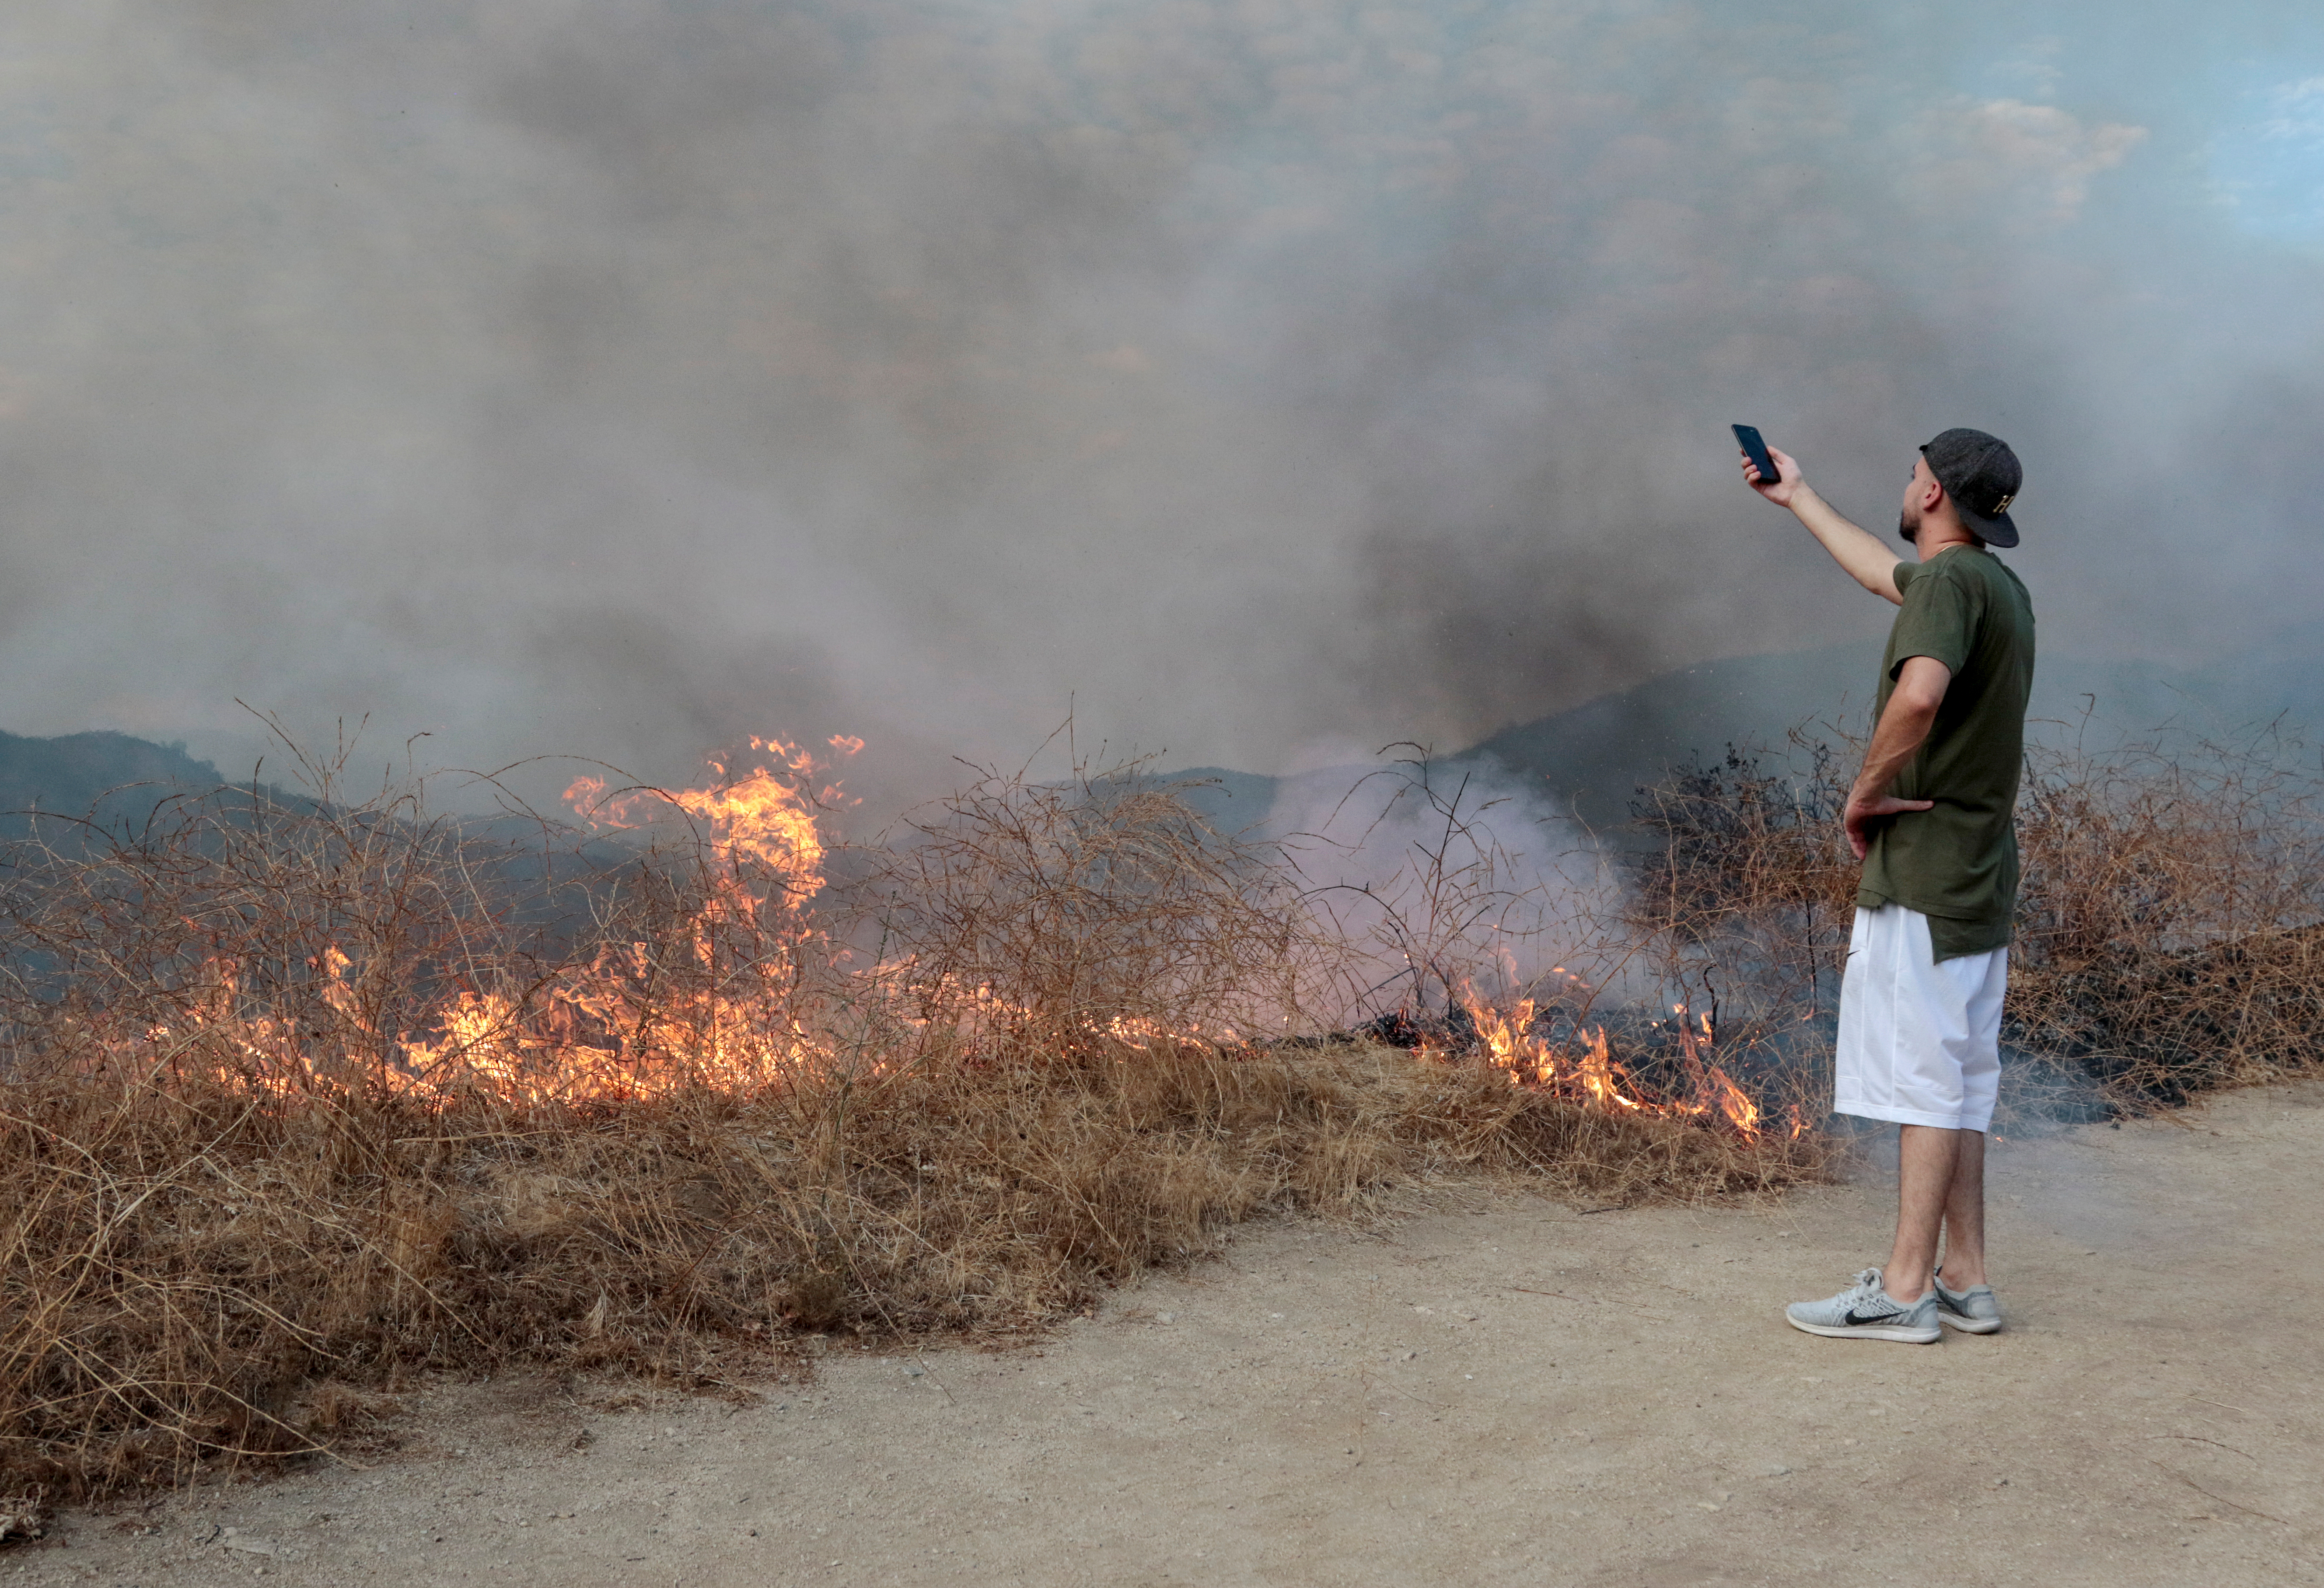 A spectator films the La Tuna Canyon fire over Burbank. (REUTERS/ Kyle Grillot)